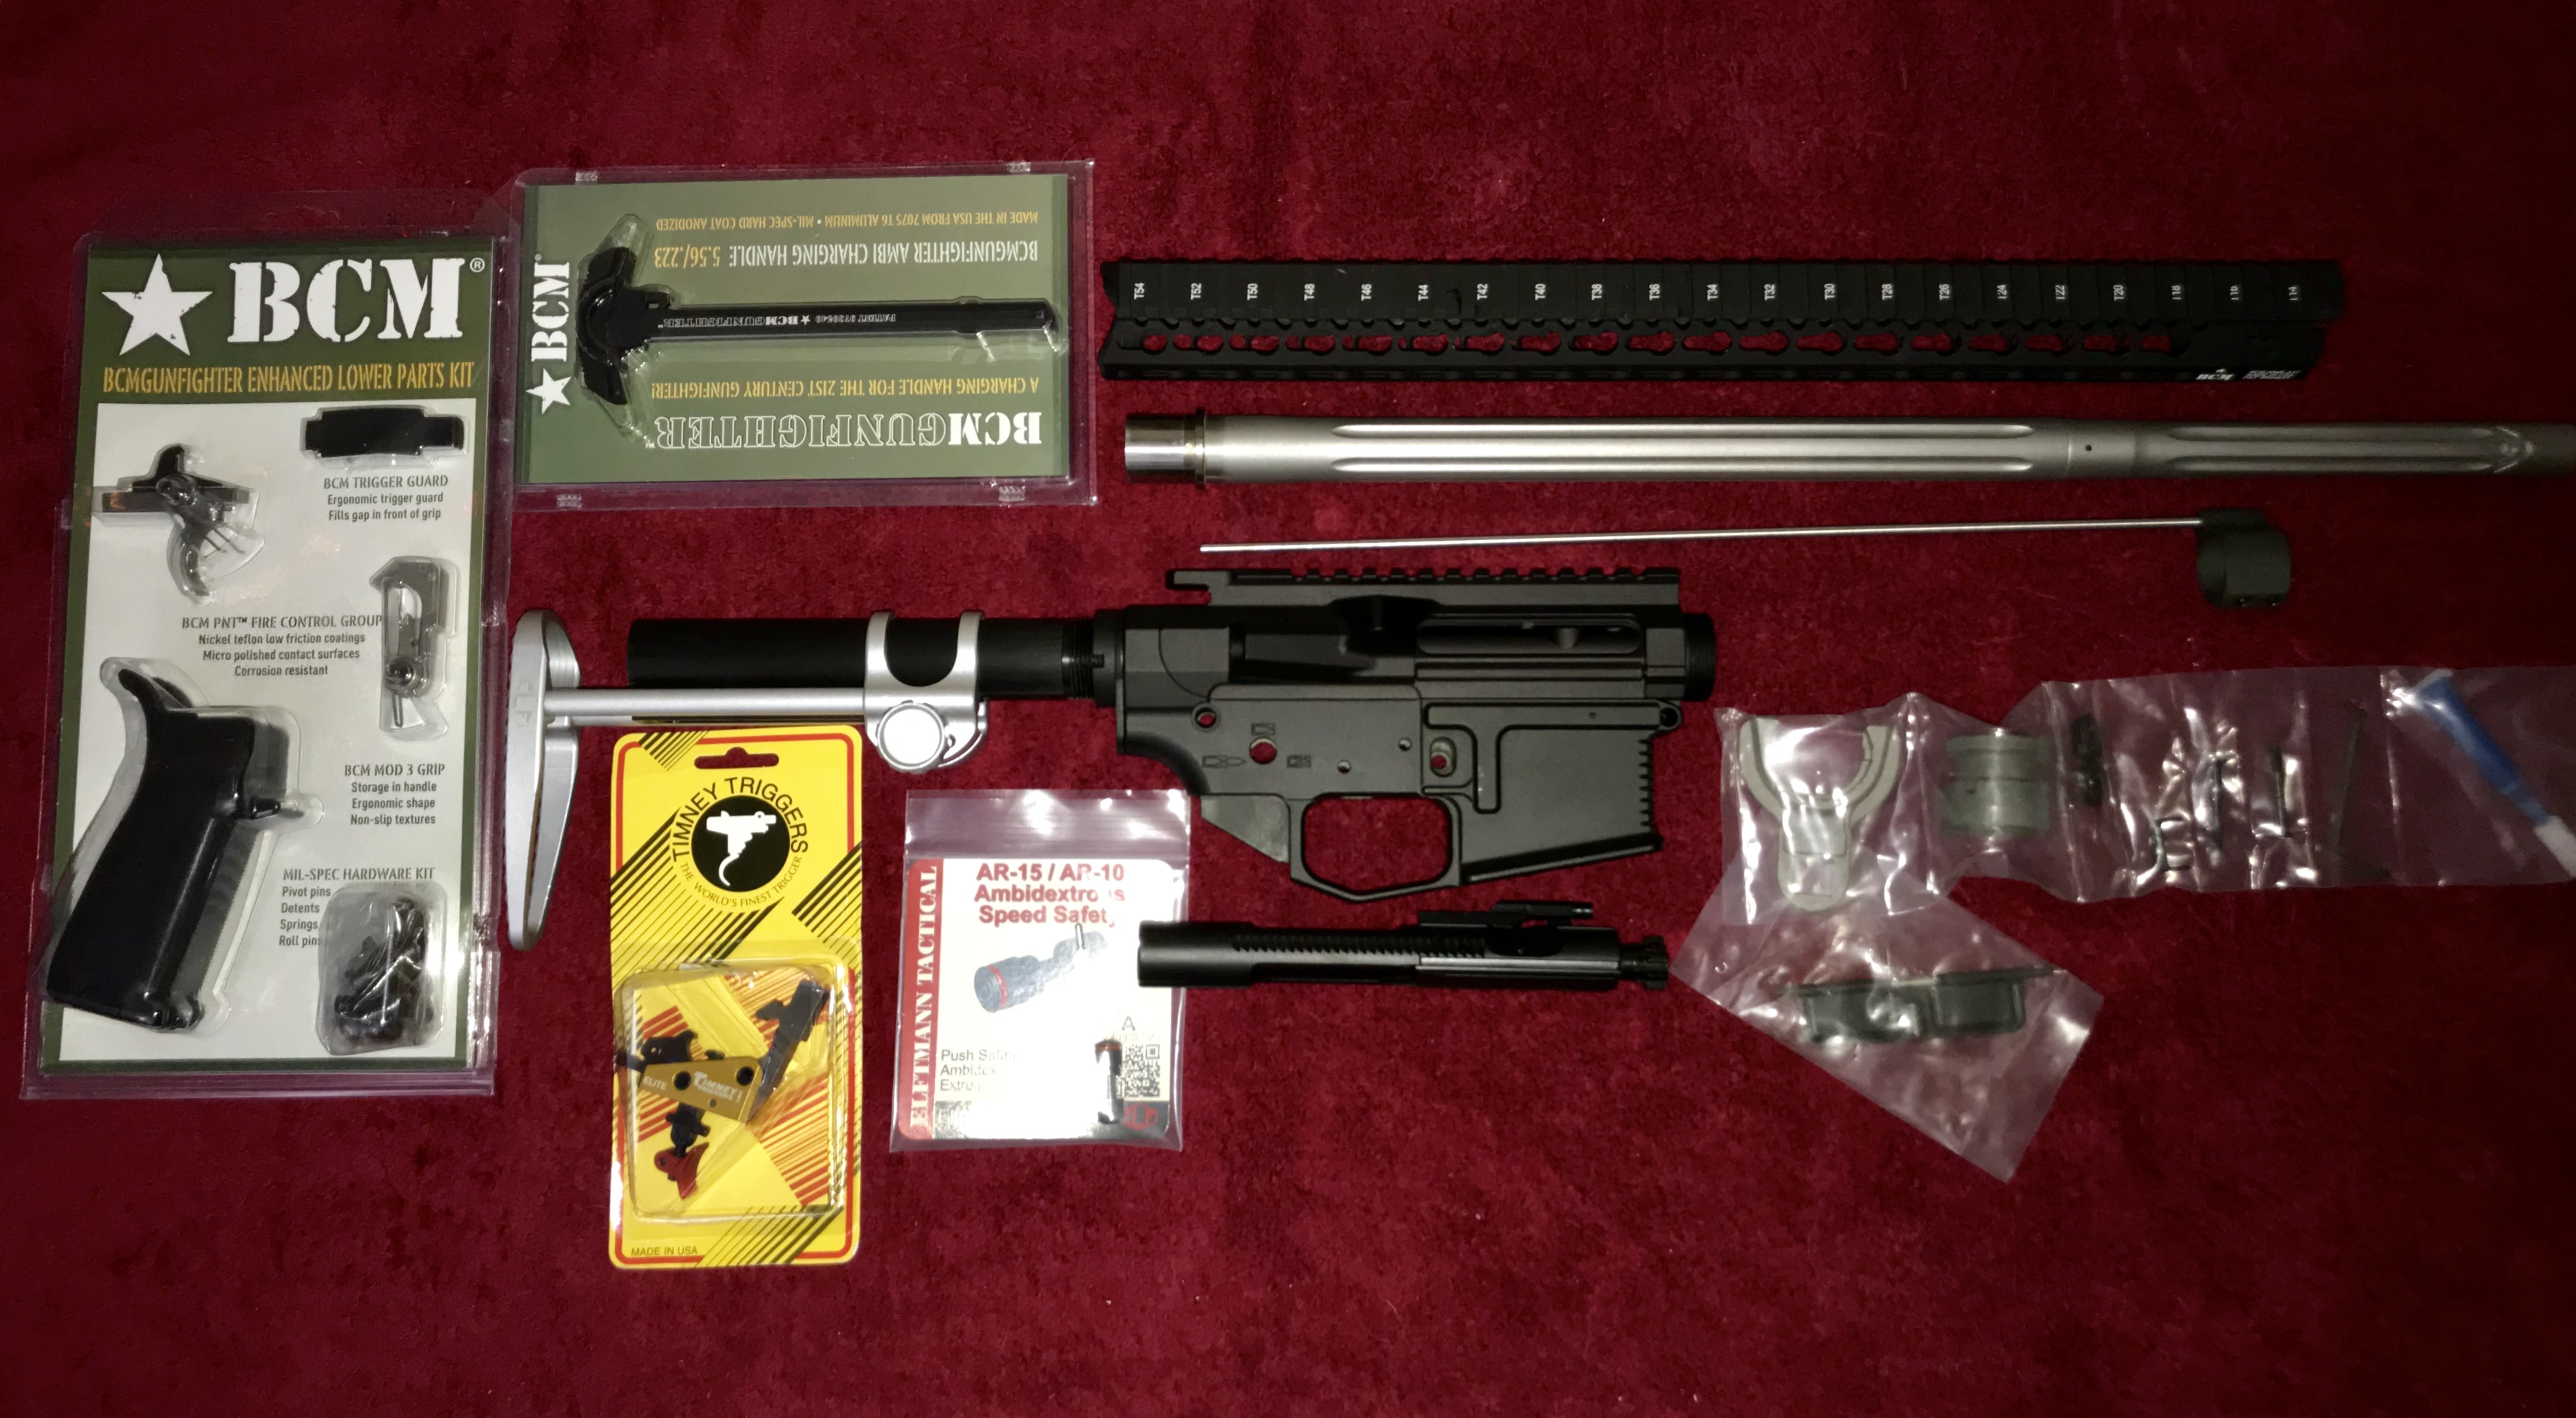 The Ultimate AR builds – Now there are 3 total maybe even 4!